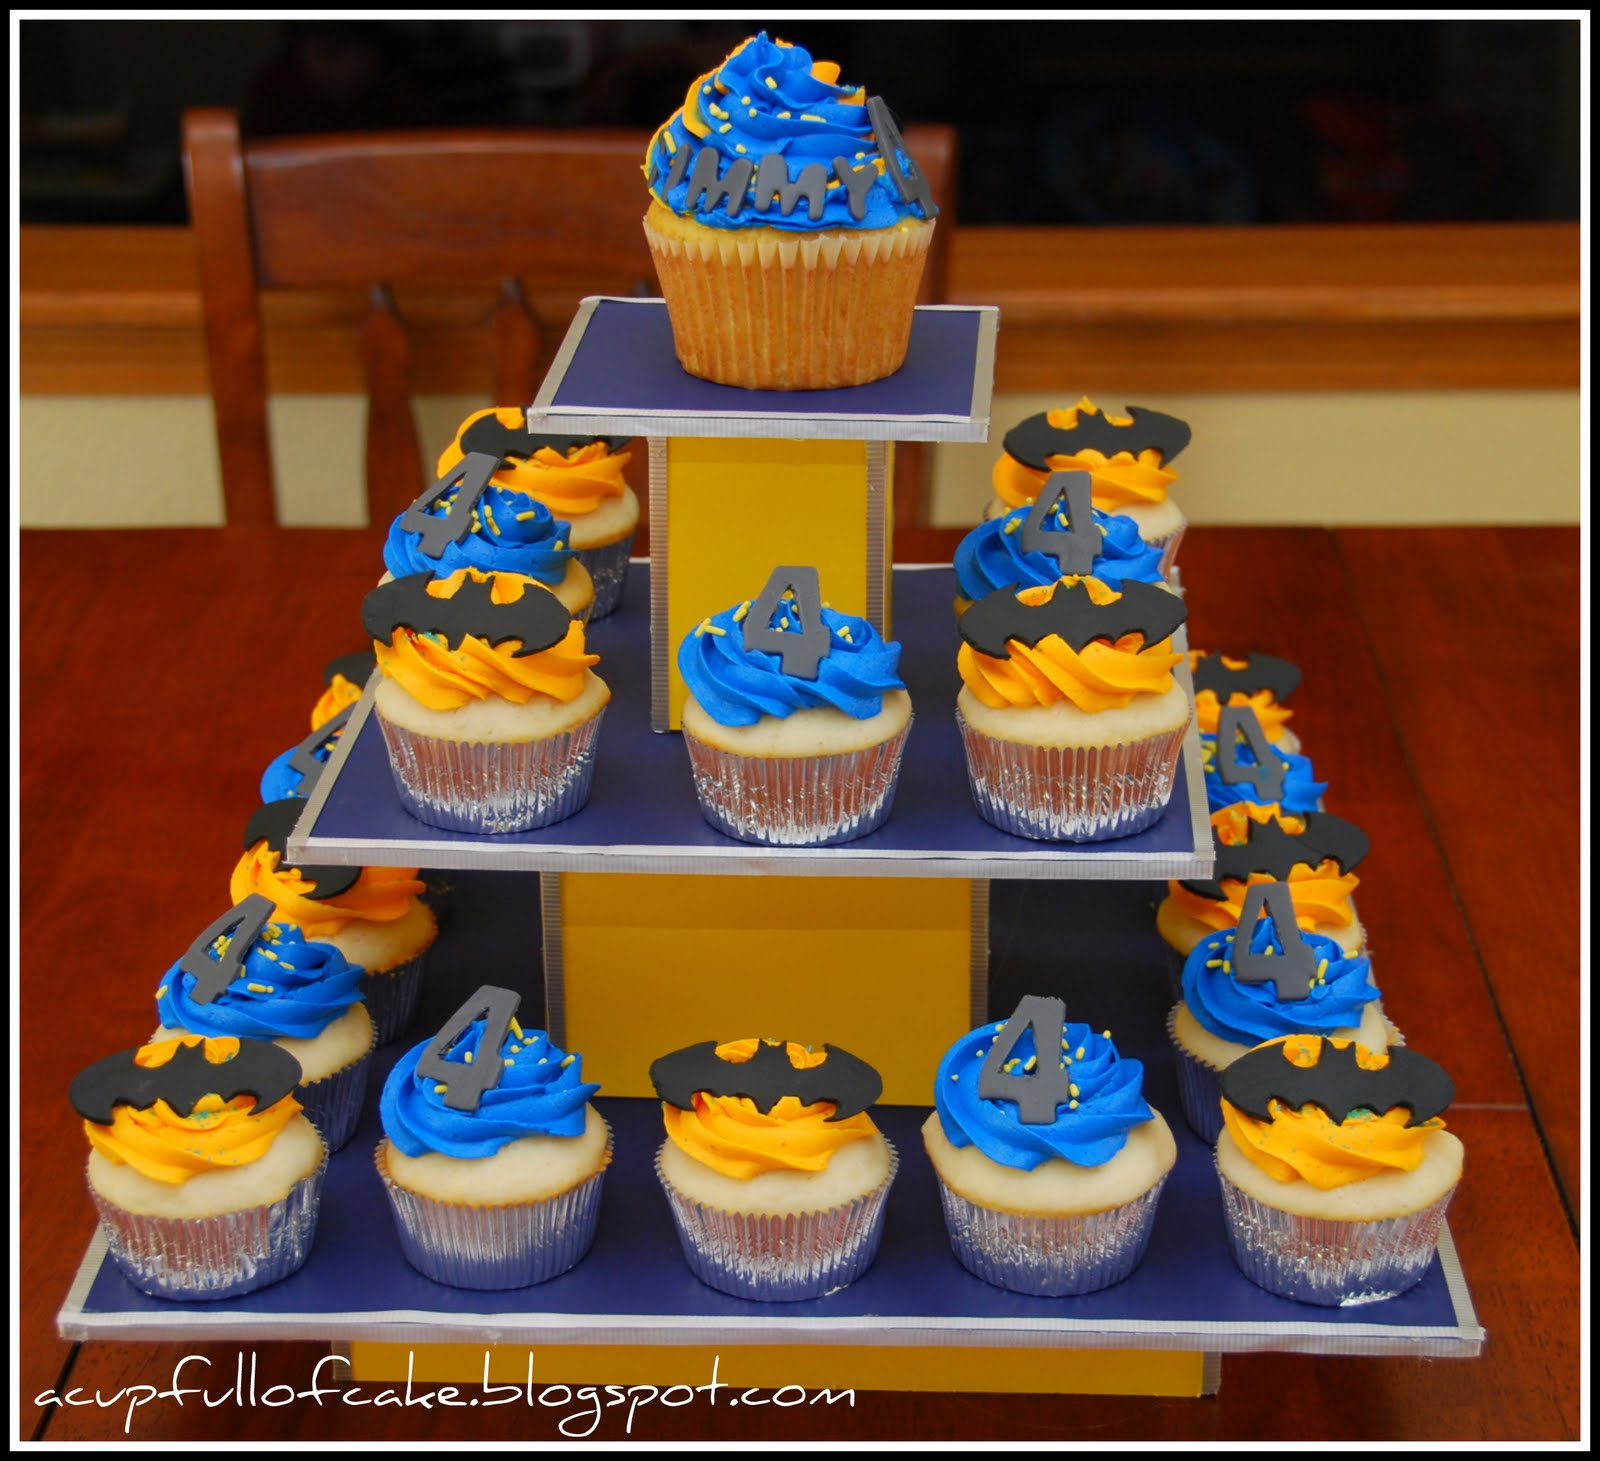 Birthday Cupcakes Designs: A Cup Full Of Cake: Holy Cupcakes Batman